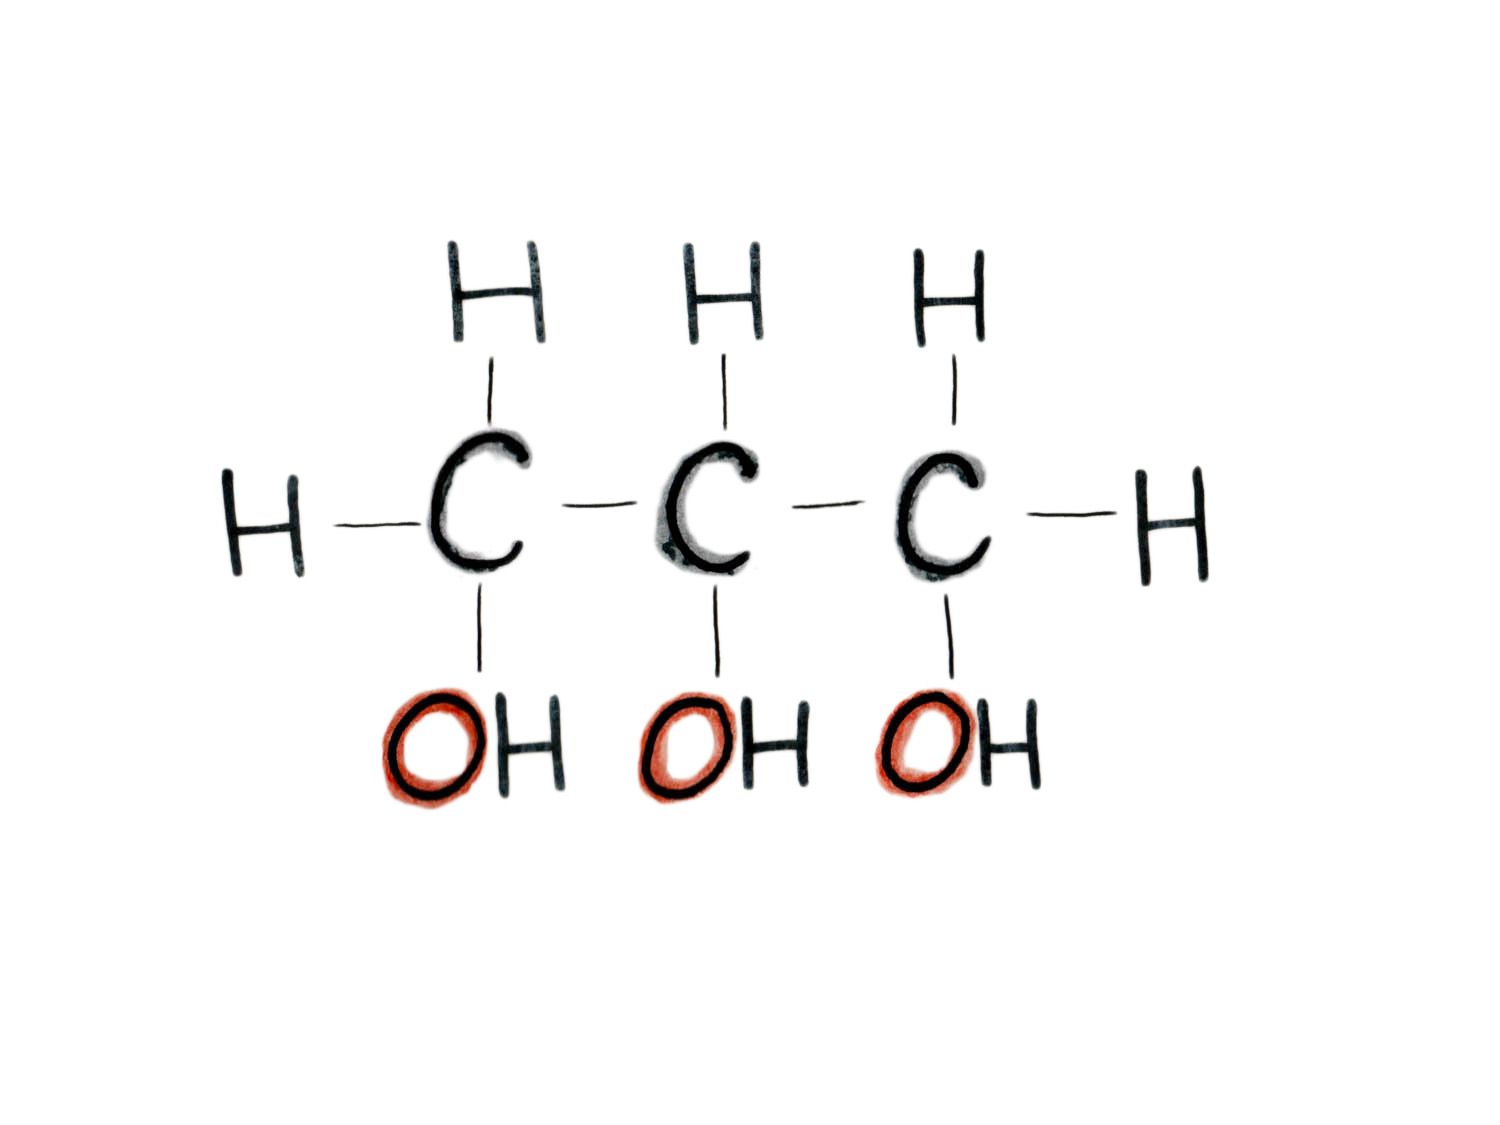 20140714-cream-science-what-happens-when-you-whip-it-claire-lower-glycerol.jpg